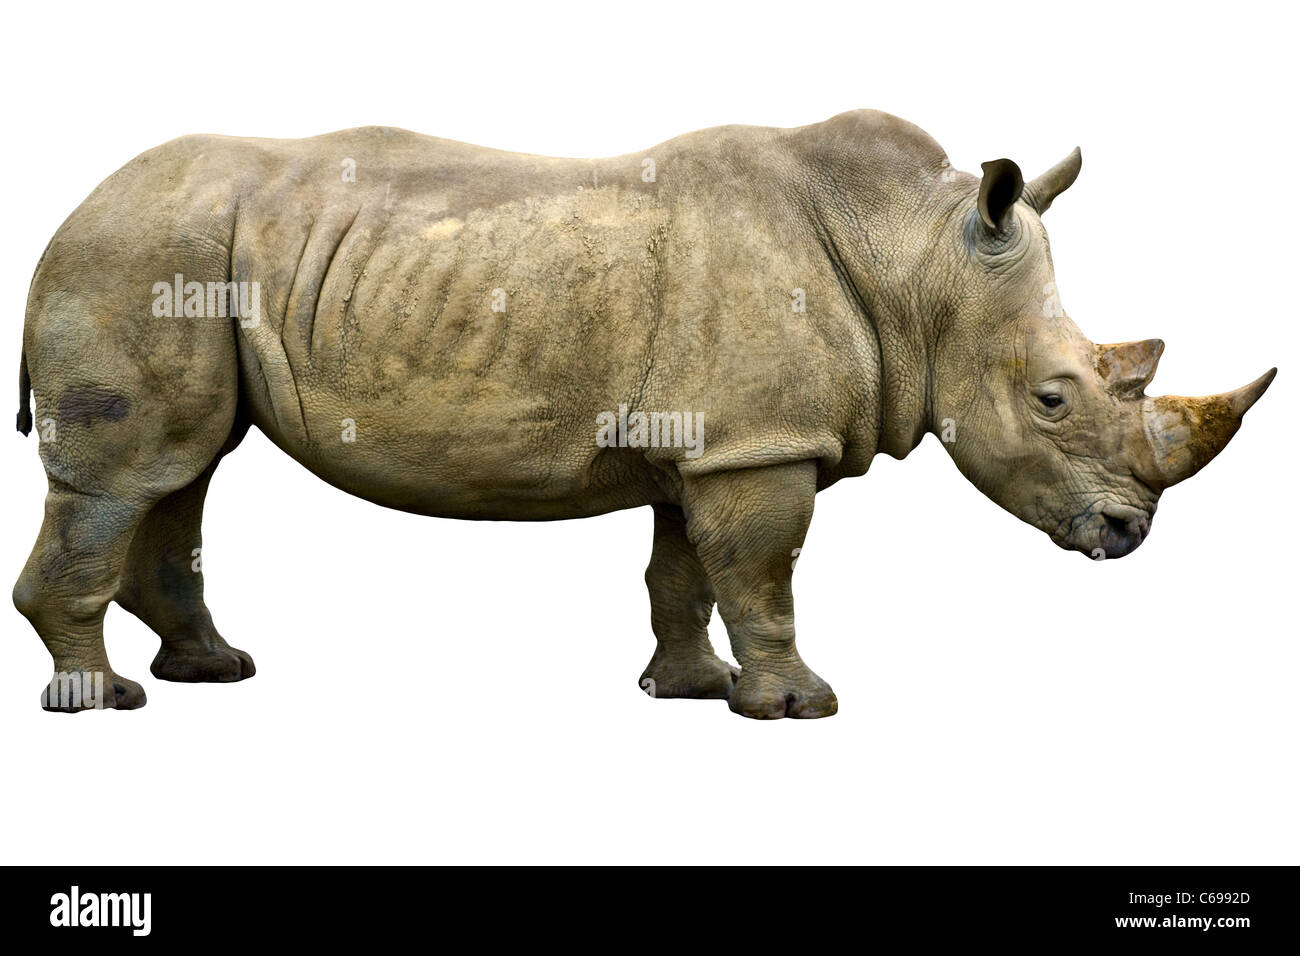 Rhinoceros Rhino cut out. View from the side. Close up (macro) - Stock Image